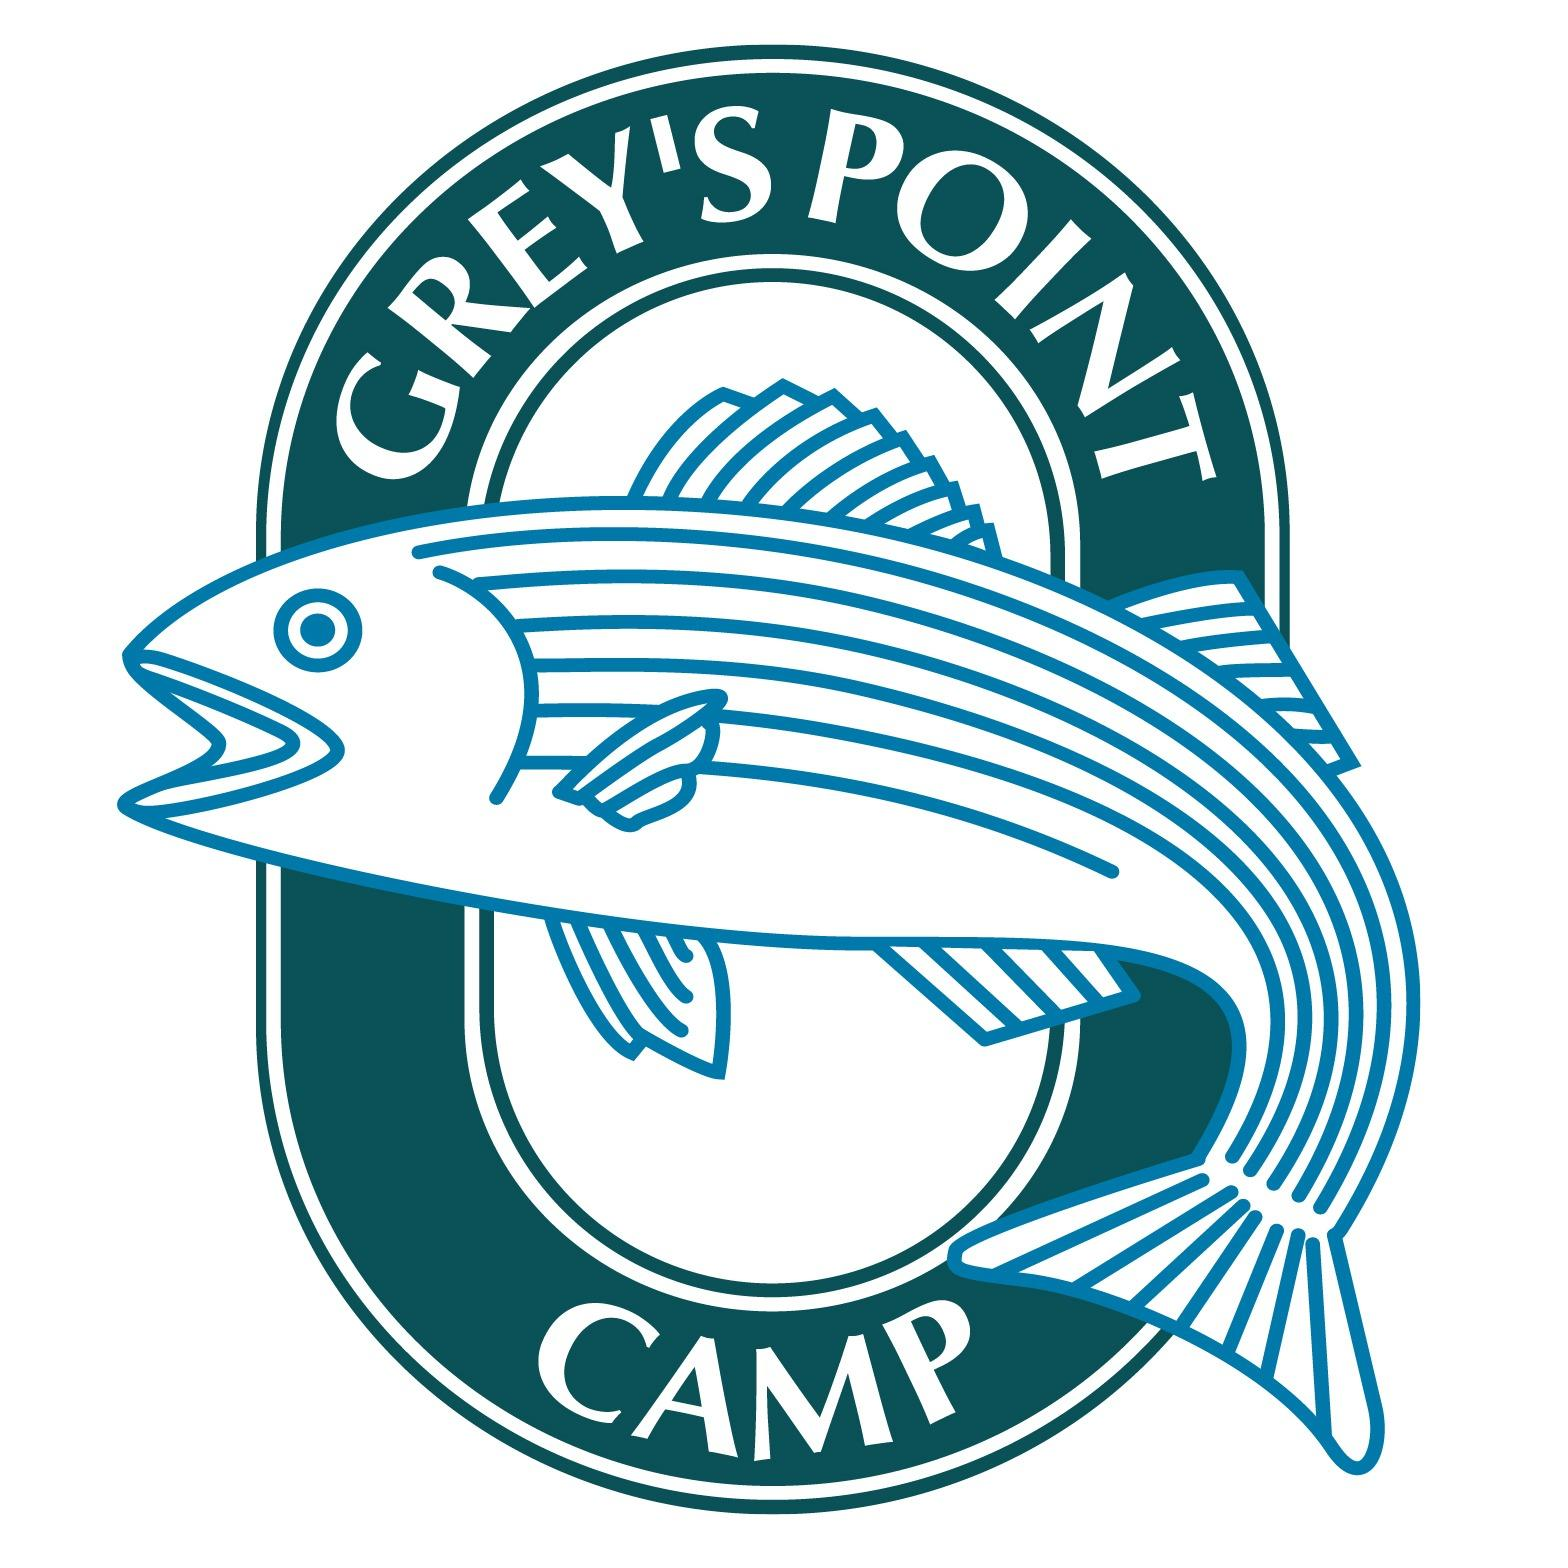 Grey's Point Camp